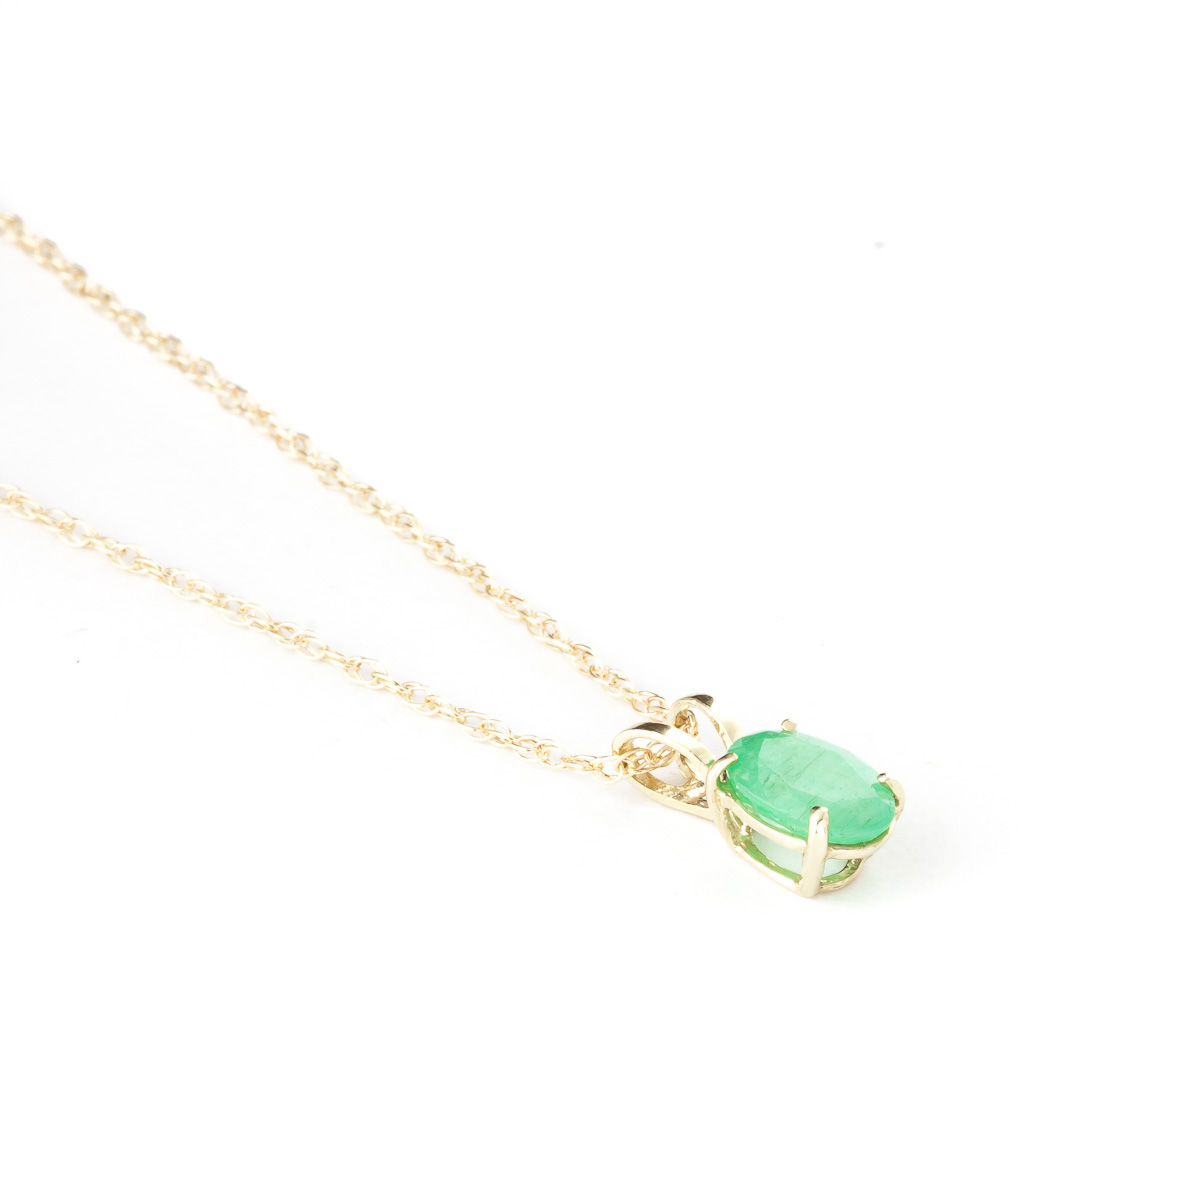 Oval Cut Emerald Pendant Necklace 0.75ct in 9ct Gold